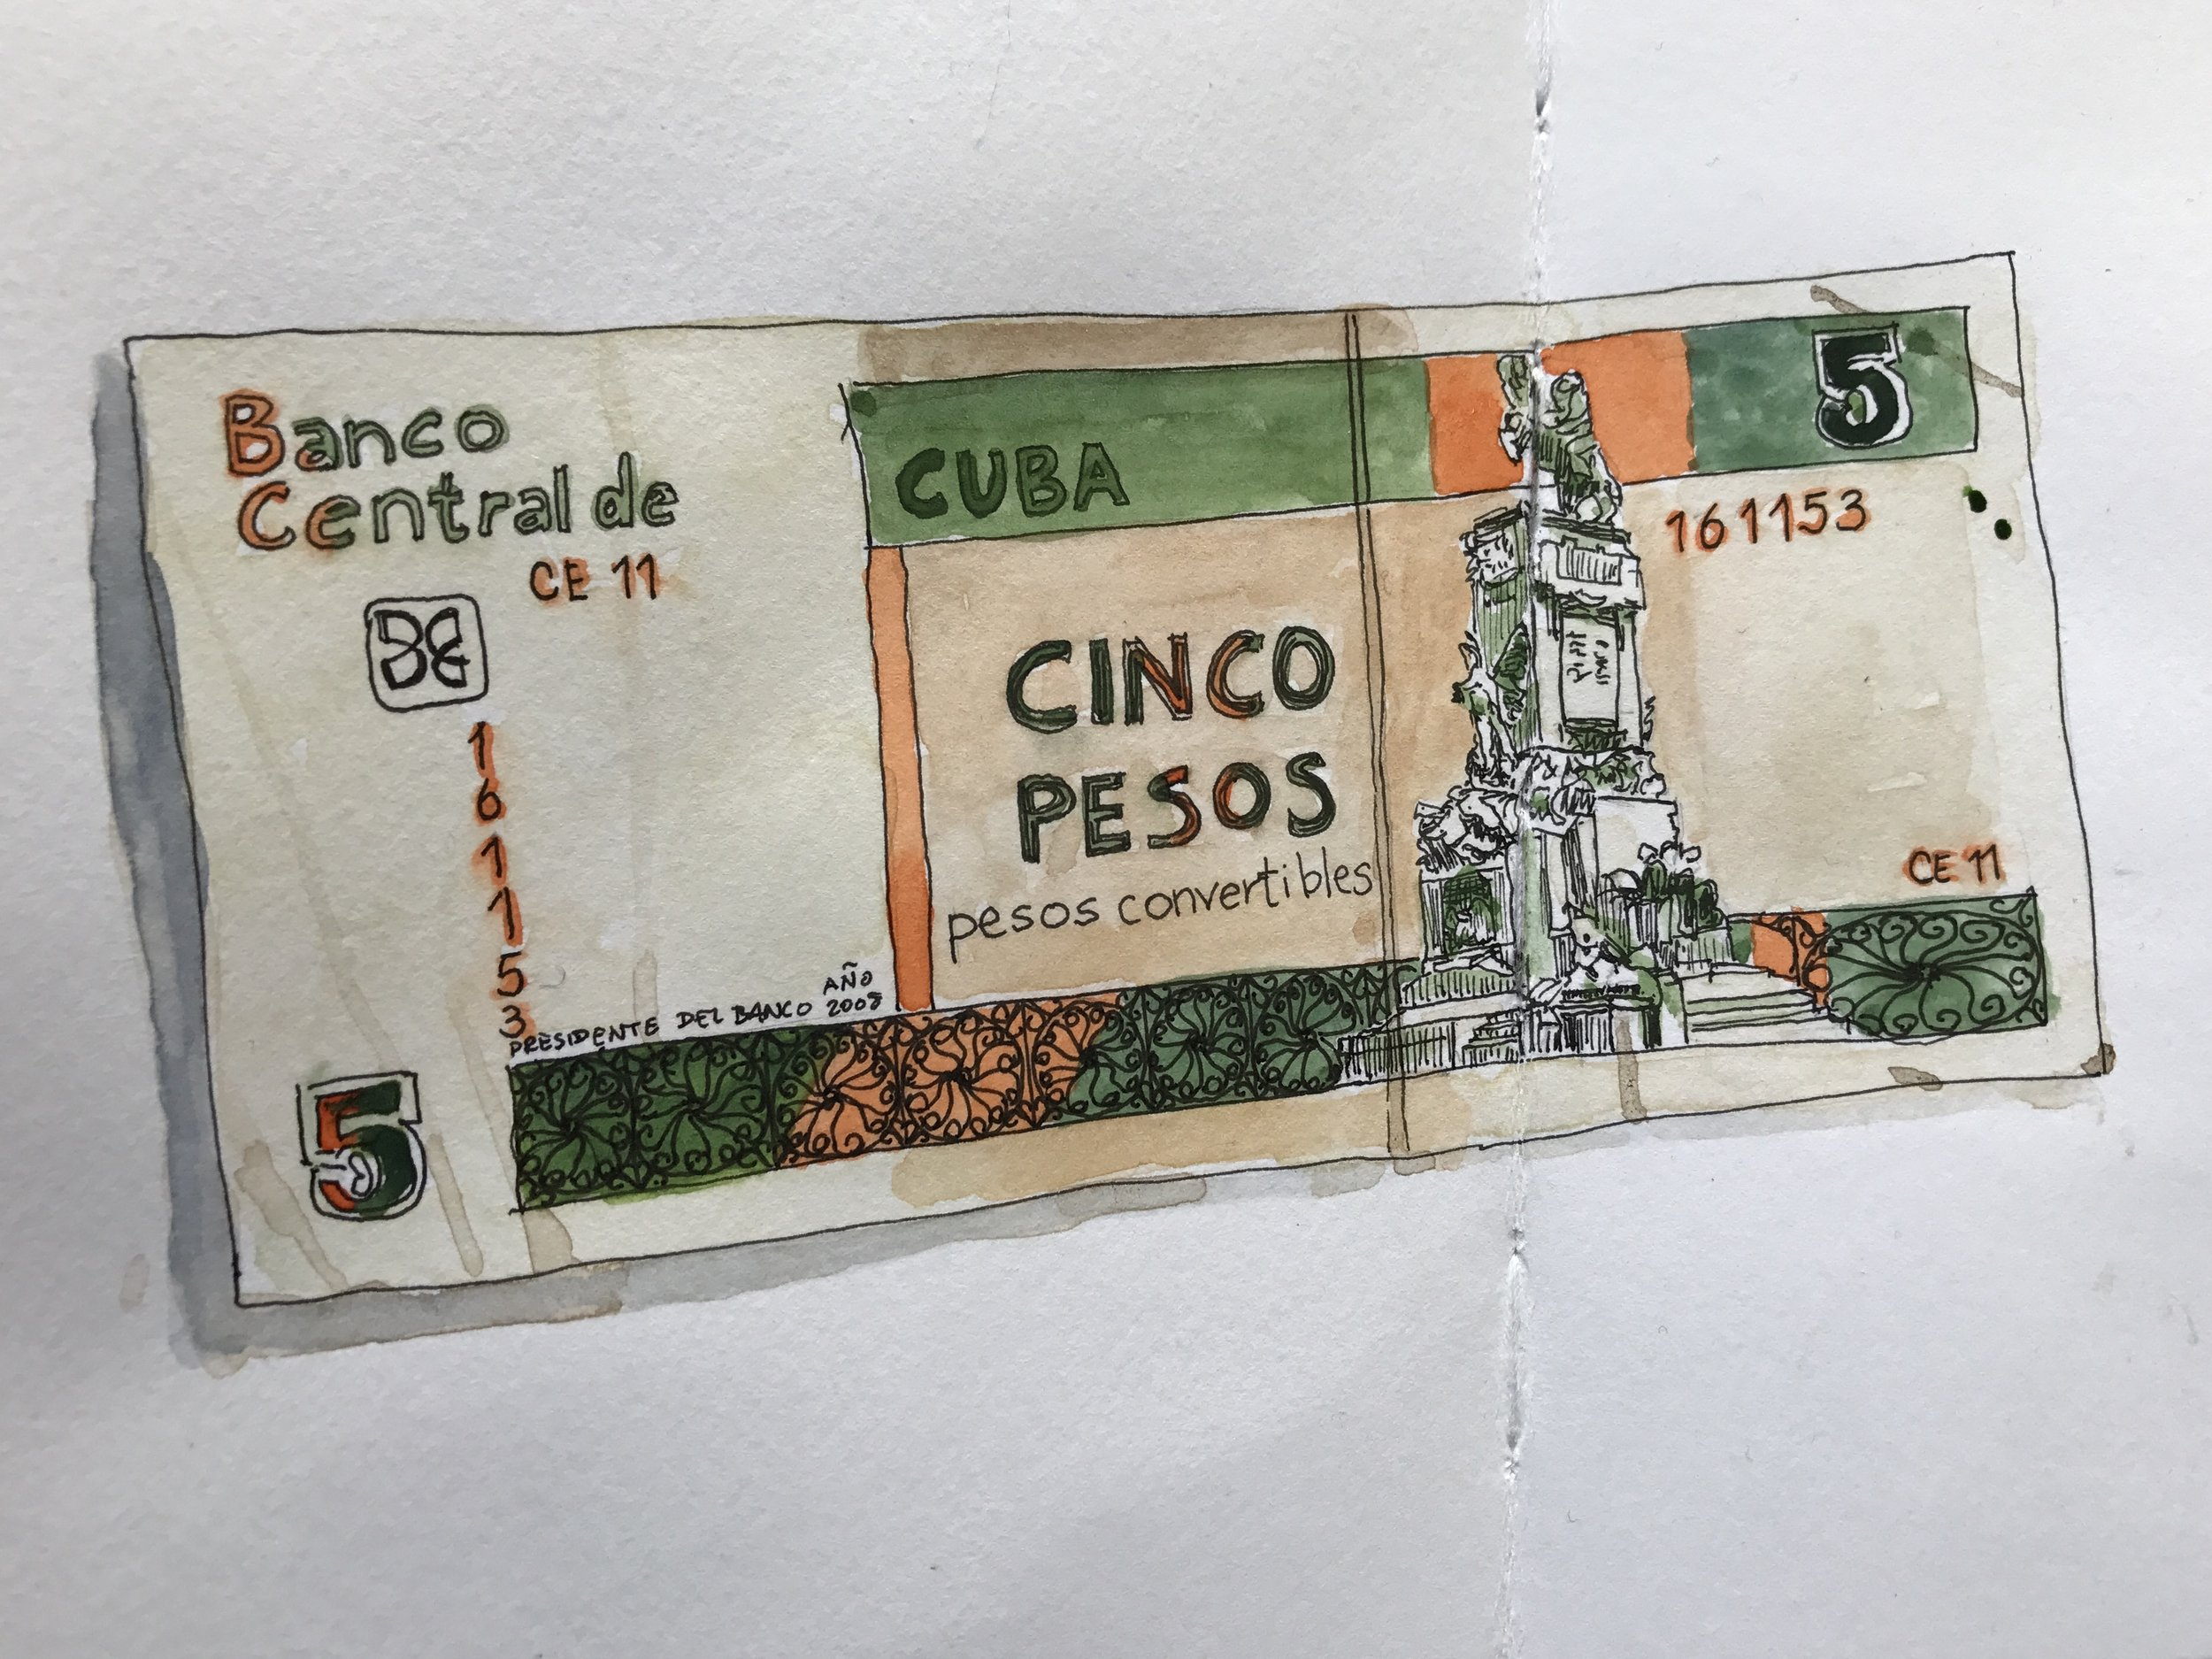 """A bill of one of the two Cuban currencies. Pesos convertibles or Cucs are what tourists in Cuba use. Ink and watercolor, Stillman & Birn 5 1/2"""" x 8 1/2"""" softcover Zeta sketchbook."""